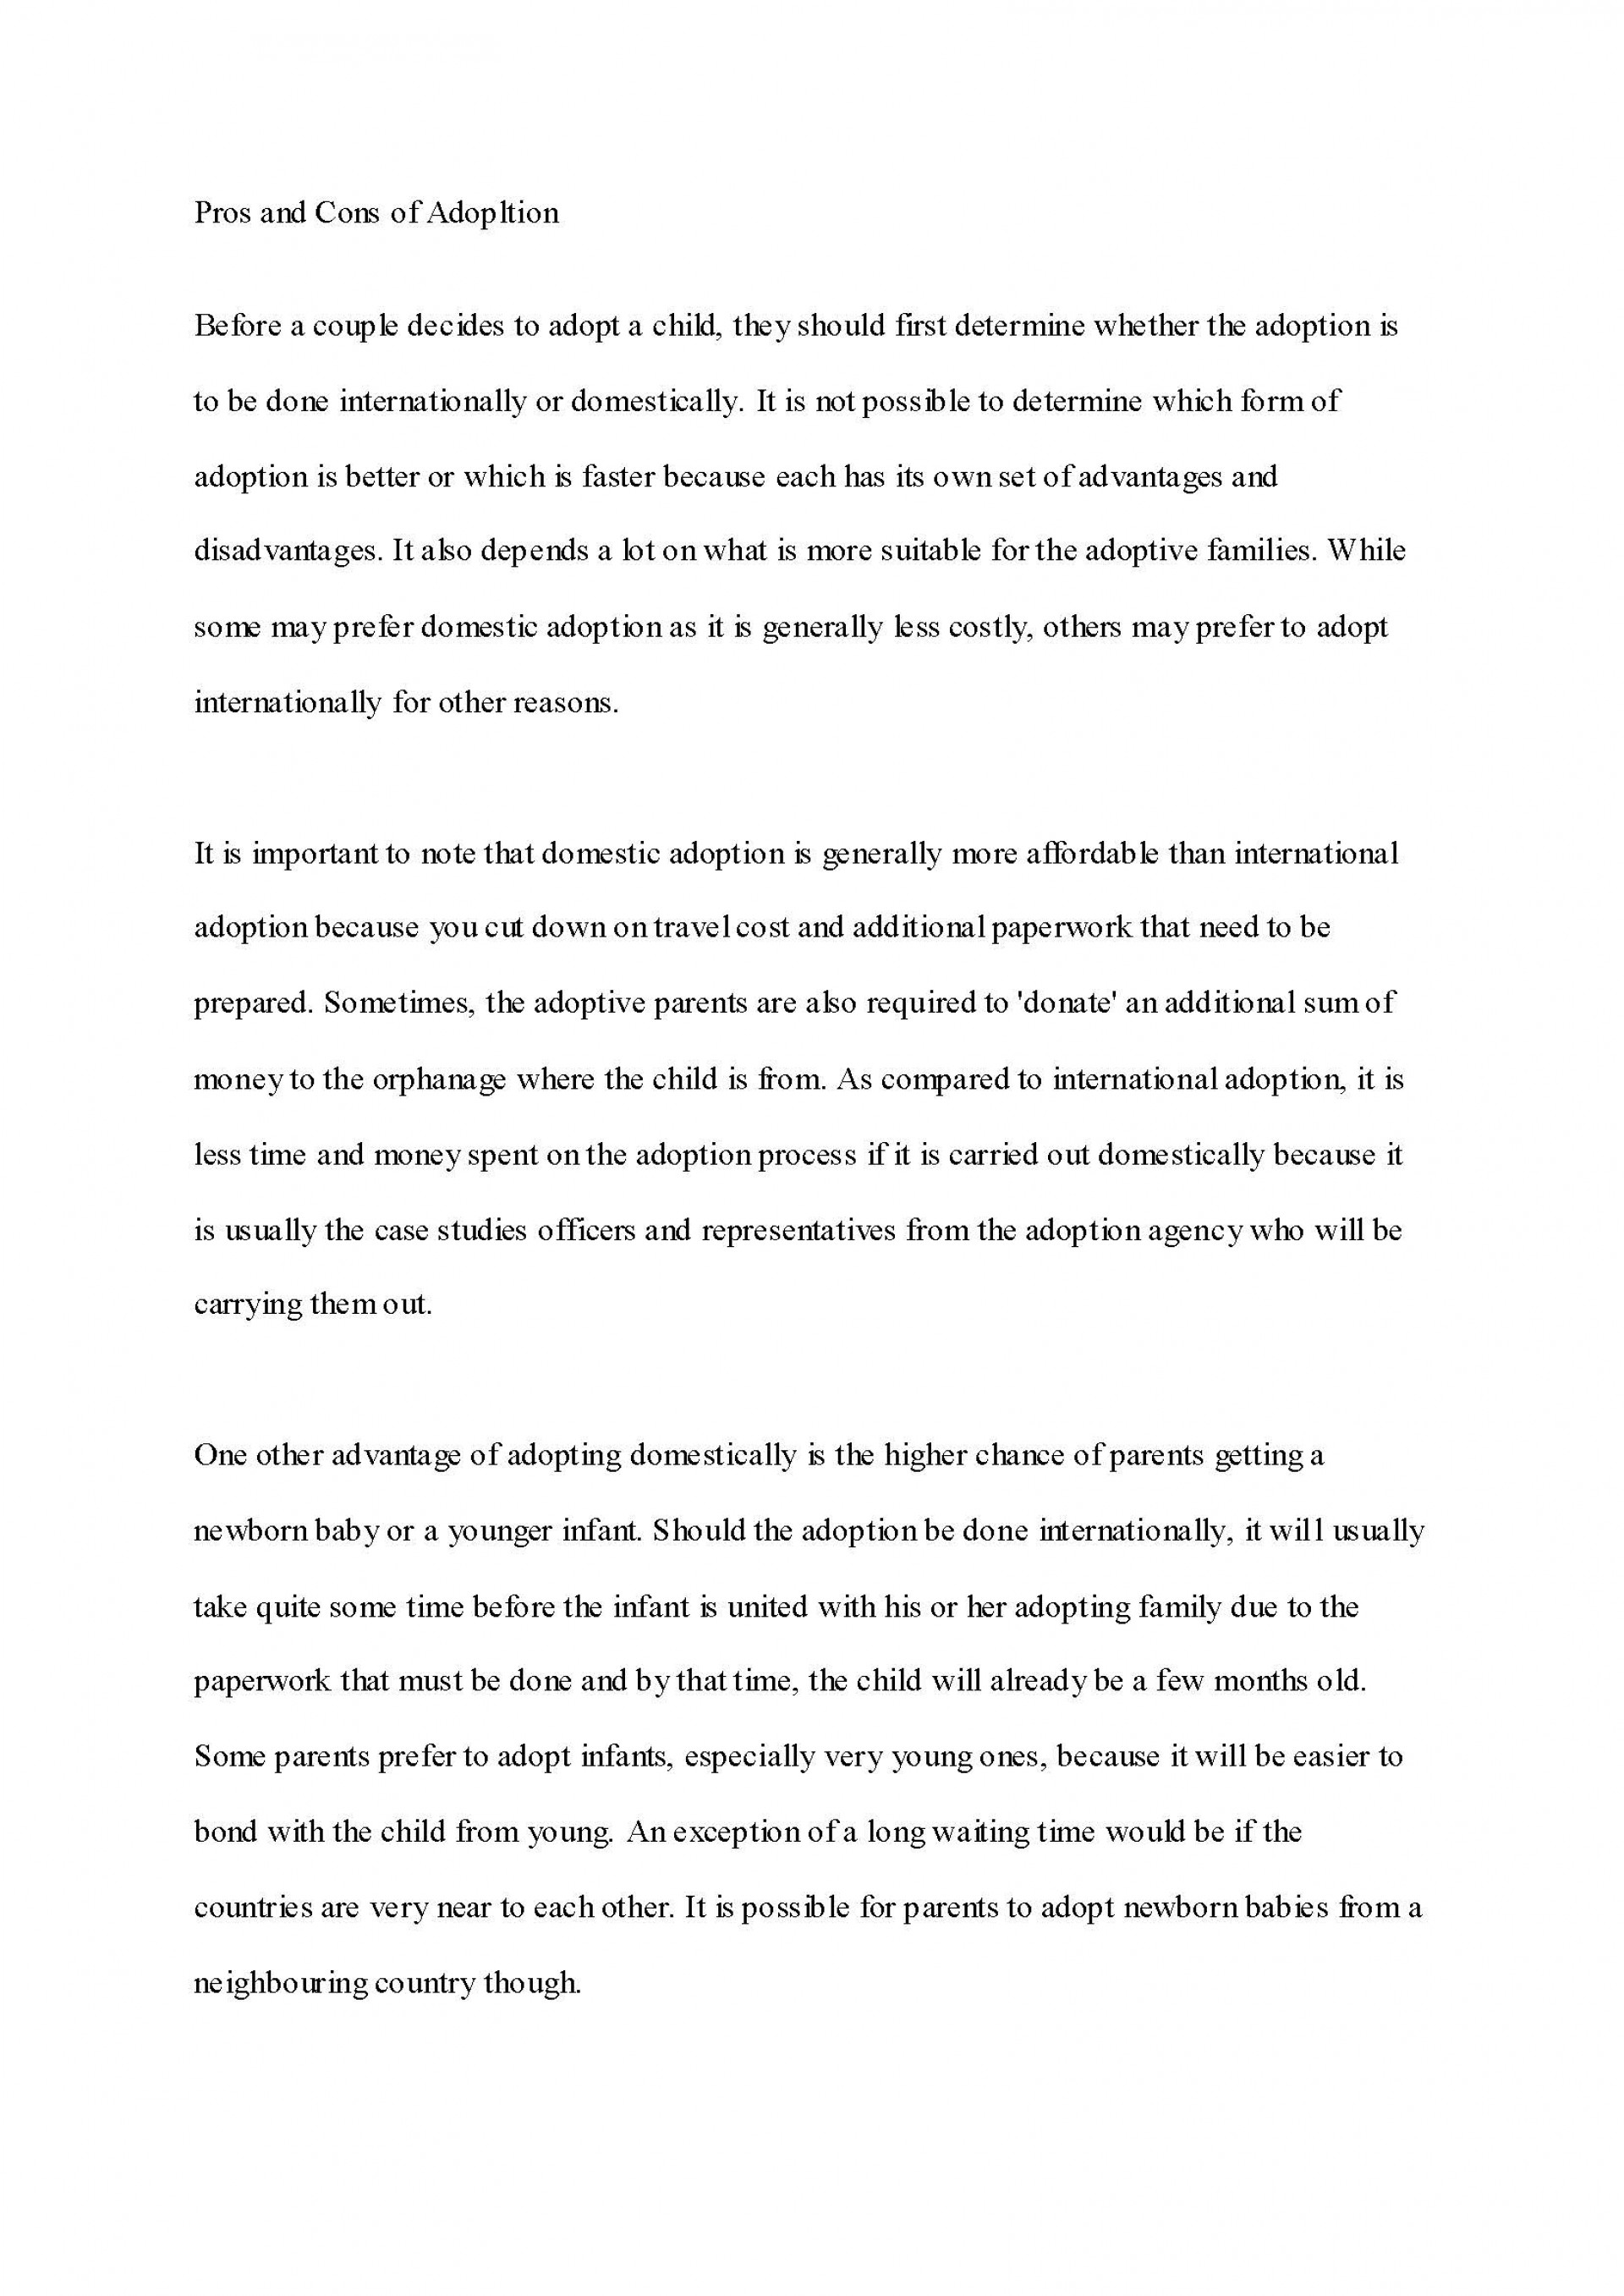 002 Essay Example Photo Adoption Fascinating Examples About Nature For Elementary Students 2018 1920